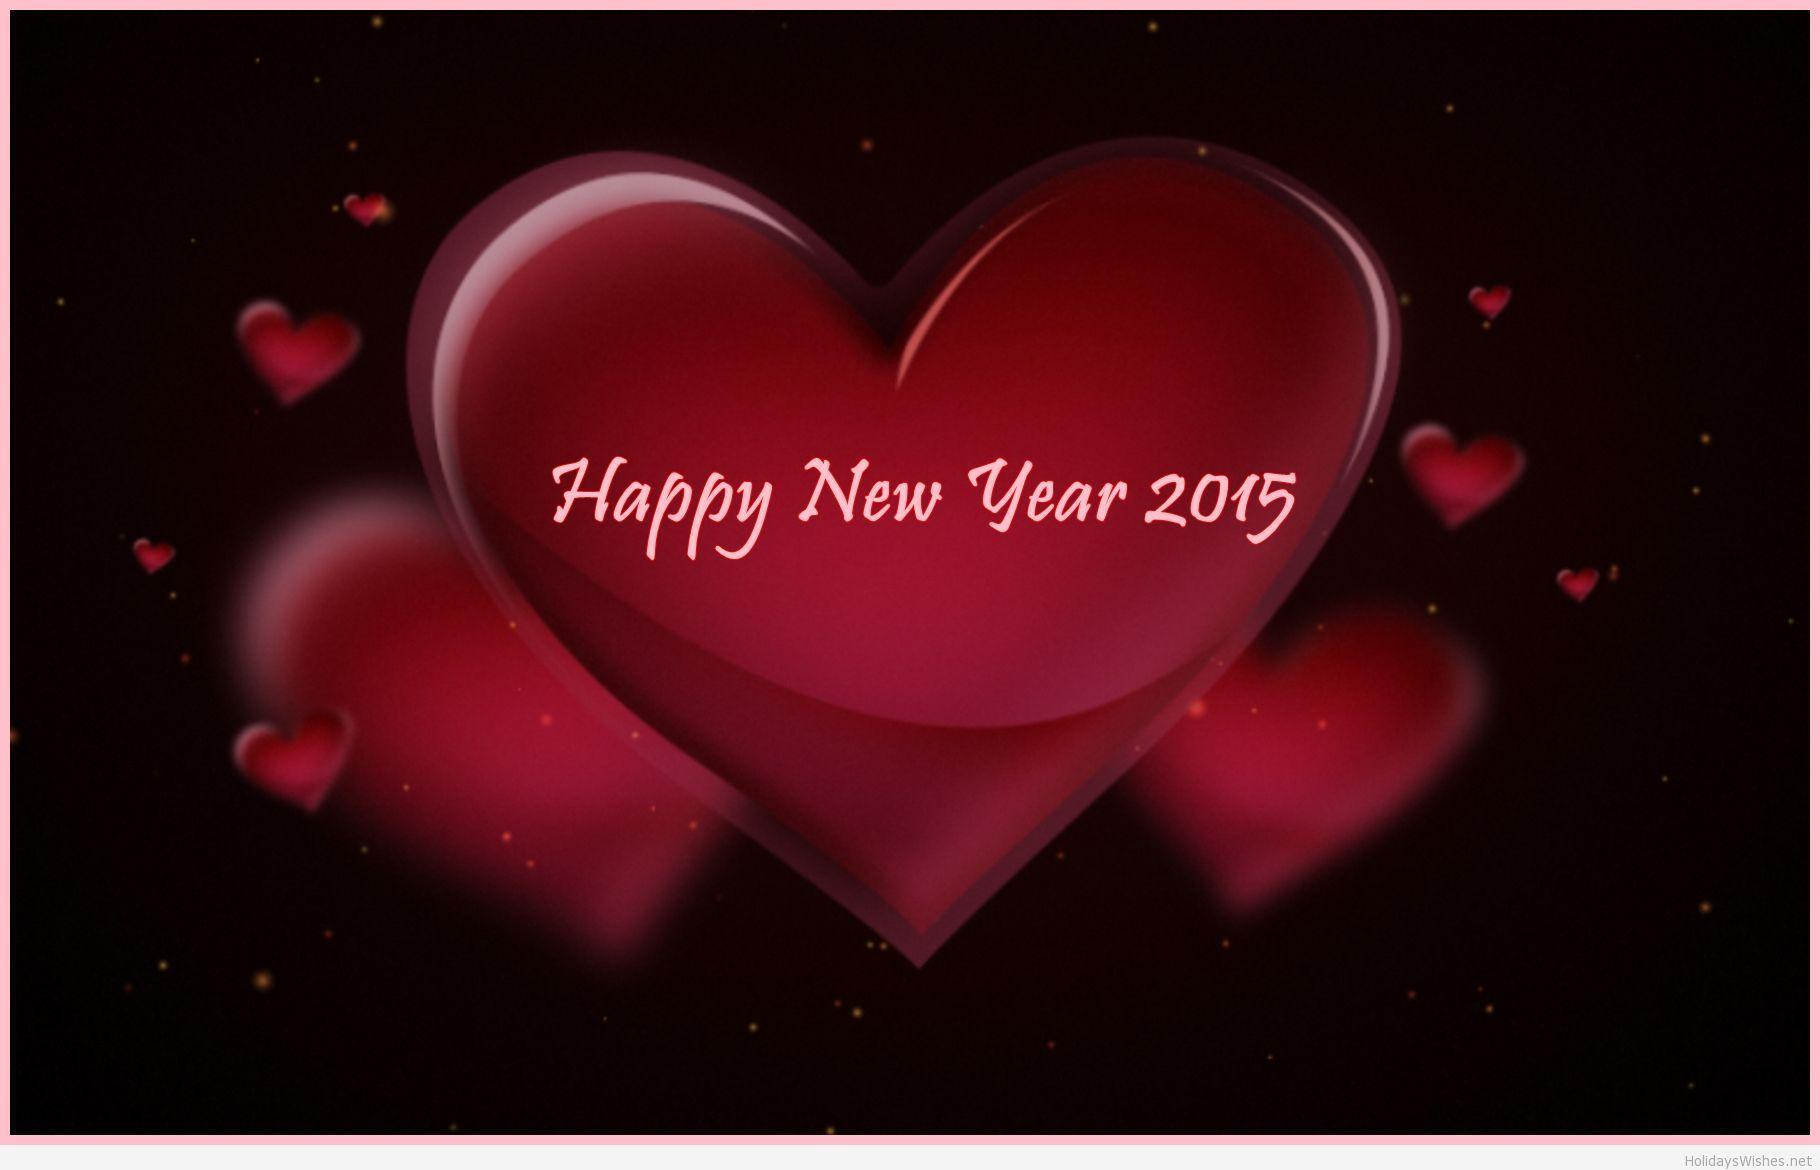 Love Wallpapers New 2015 : Love Wallpapers 2015 - Wallpaper cave